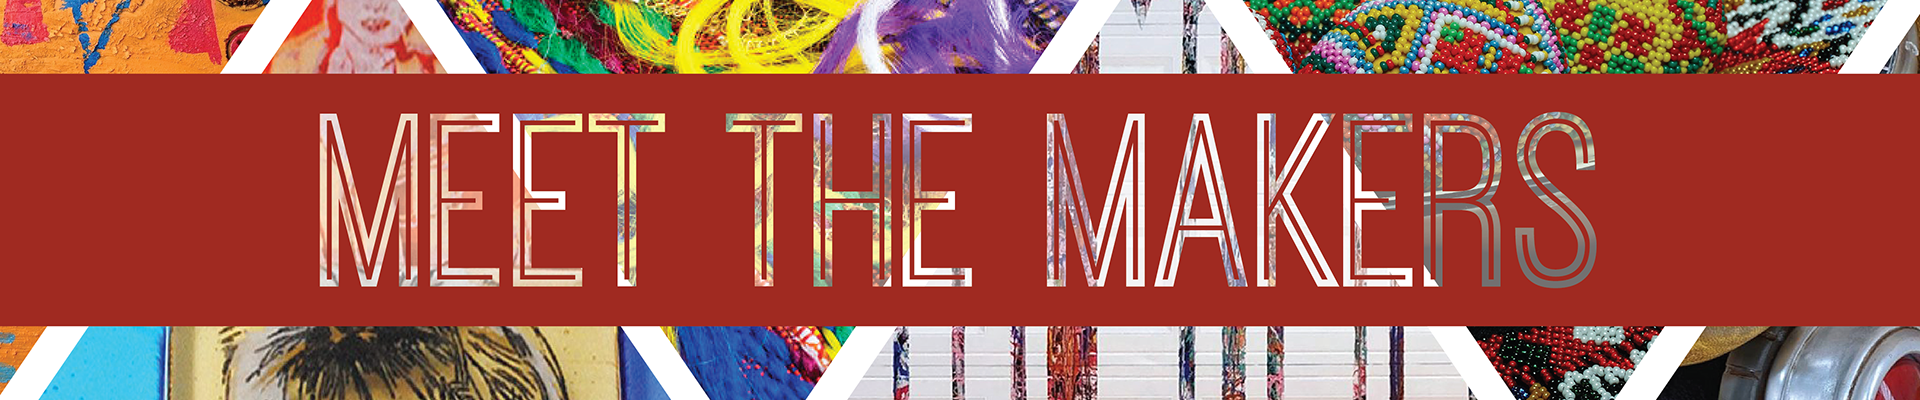 Meet the Makers graphic